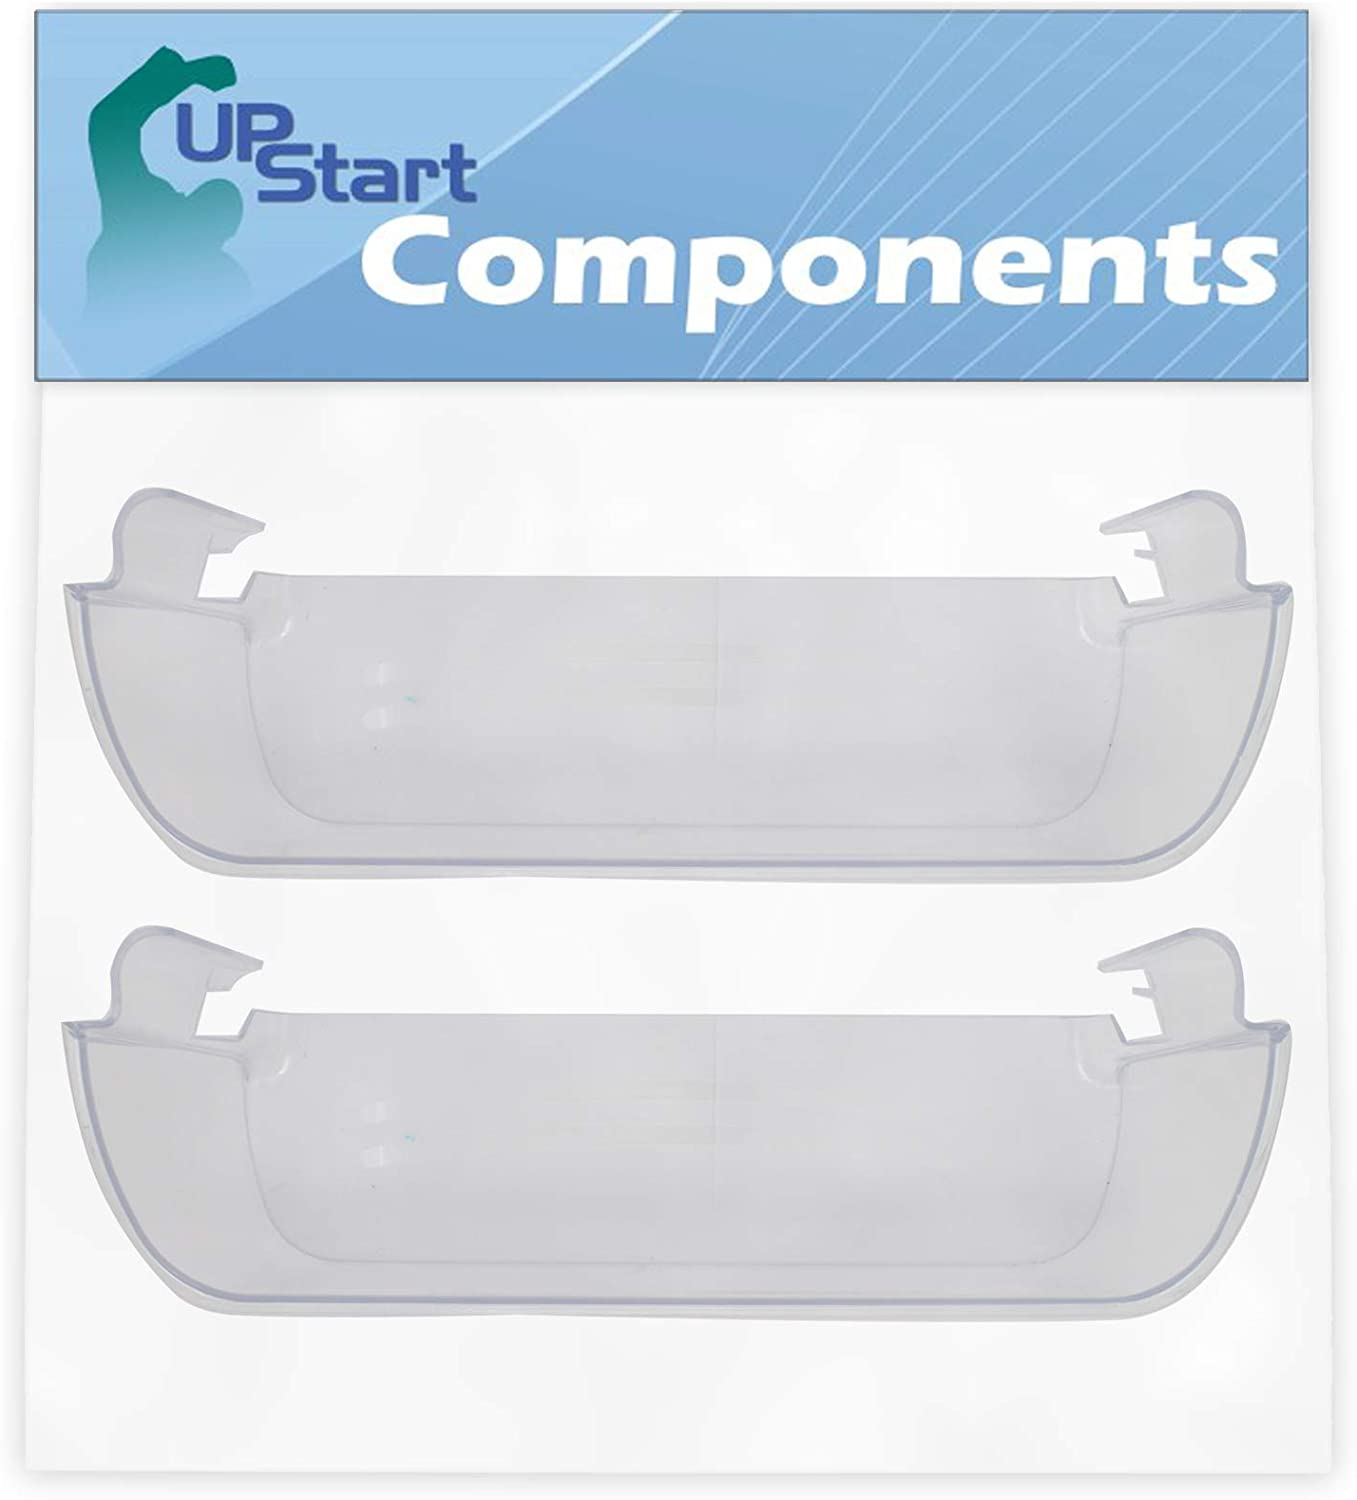 2-Pack 240323002 Refrigerator High material Clear Door Save money for Fri Replacement Bin